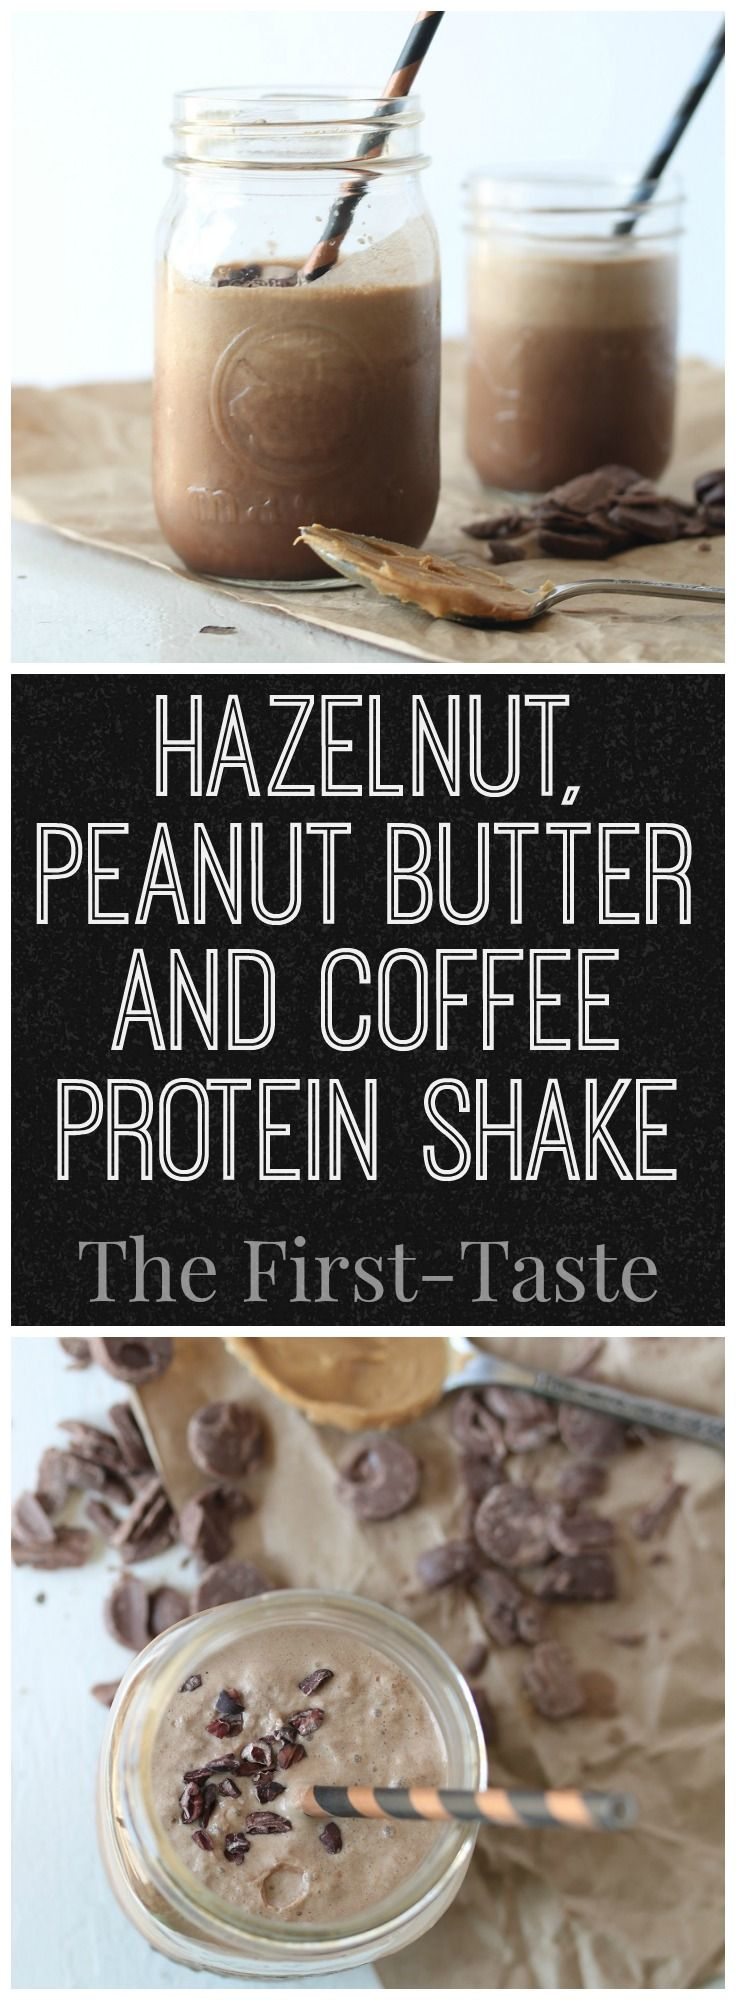 Hazelnut, Peanut Butter and Coffee Protein Shake. Keep your energy up AND treat yourself at the same time with this delicious Hazelnut, Peanut Butter & Coffee Protein Shake. High protein, low calories. The First-Taste.com. via @firsttaste2016